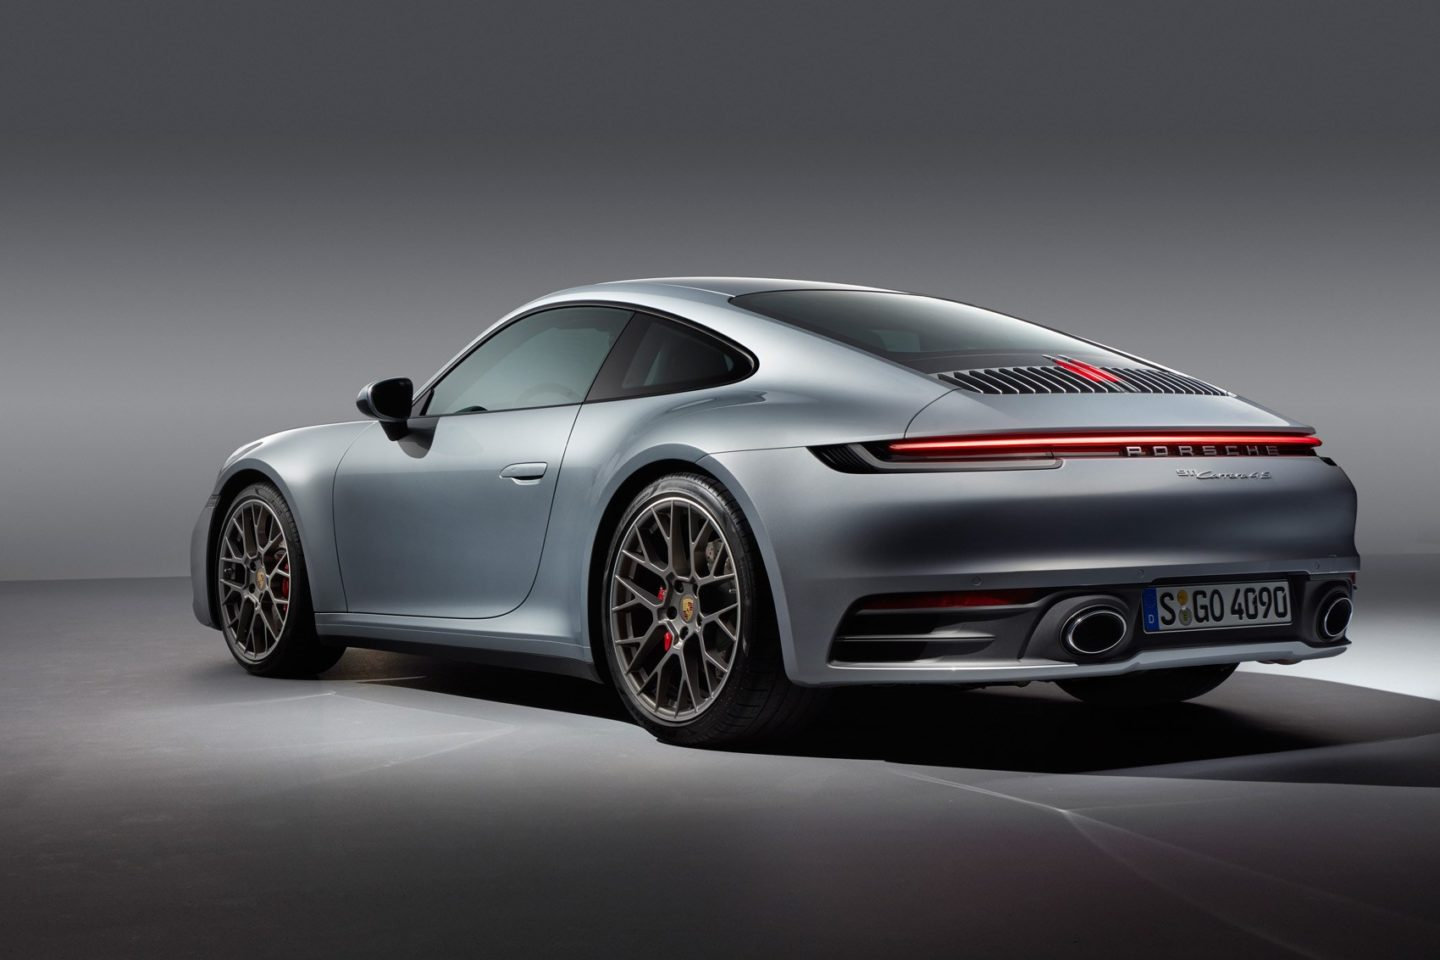 All-new Porsche 911 – full details on the 992